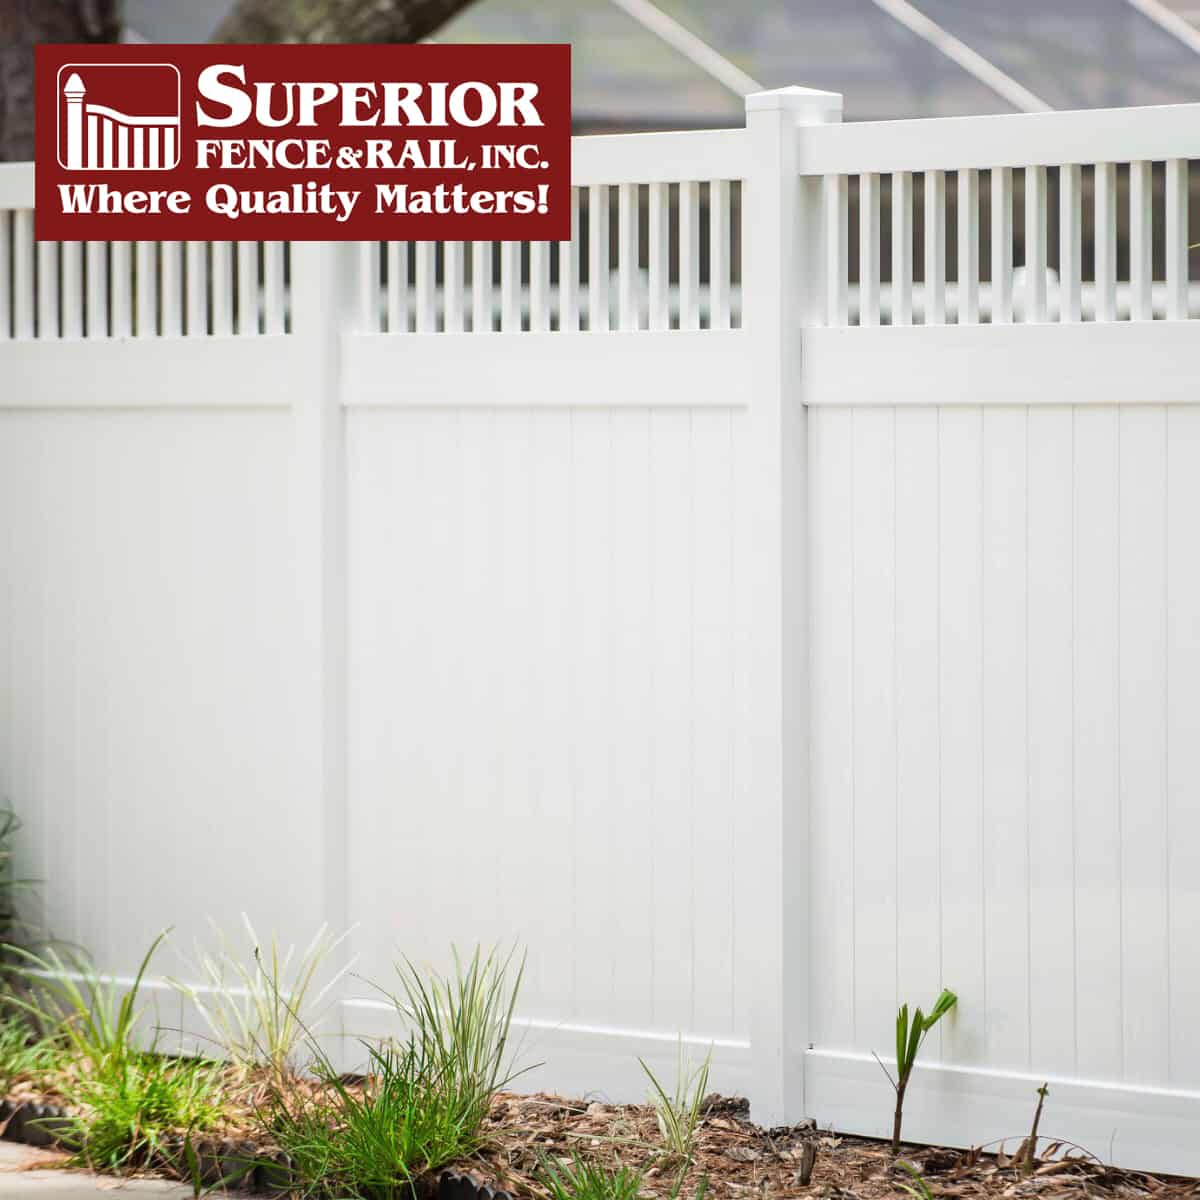 North Port fence company contractor